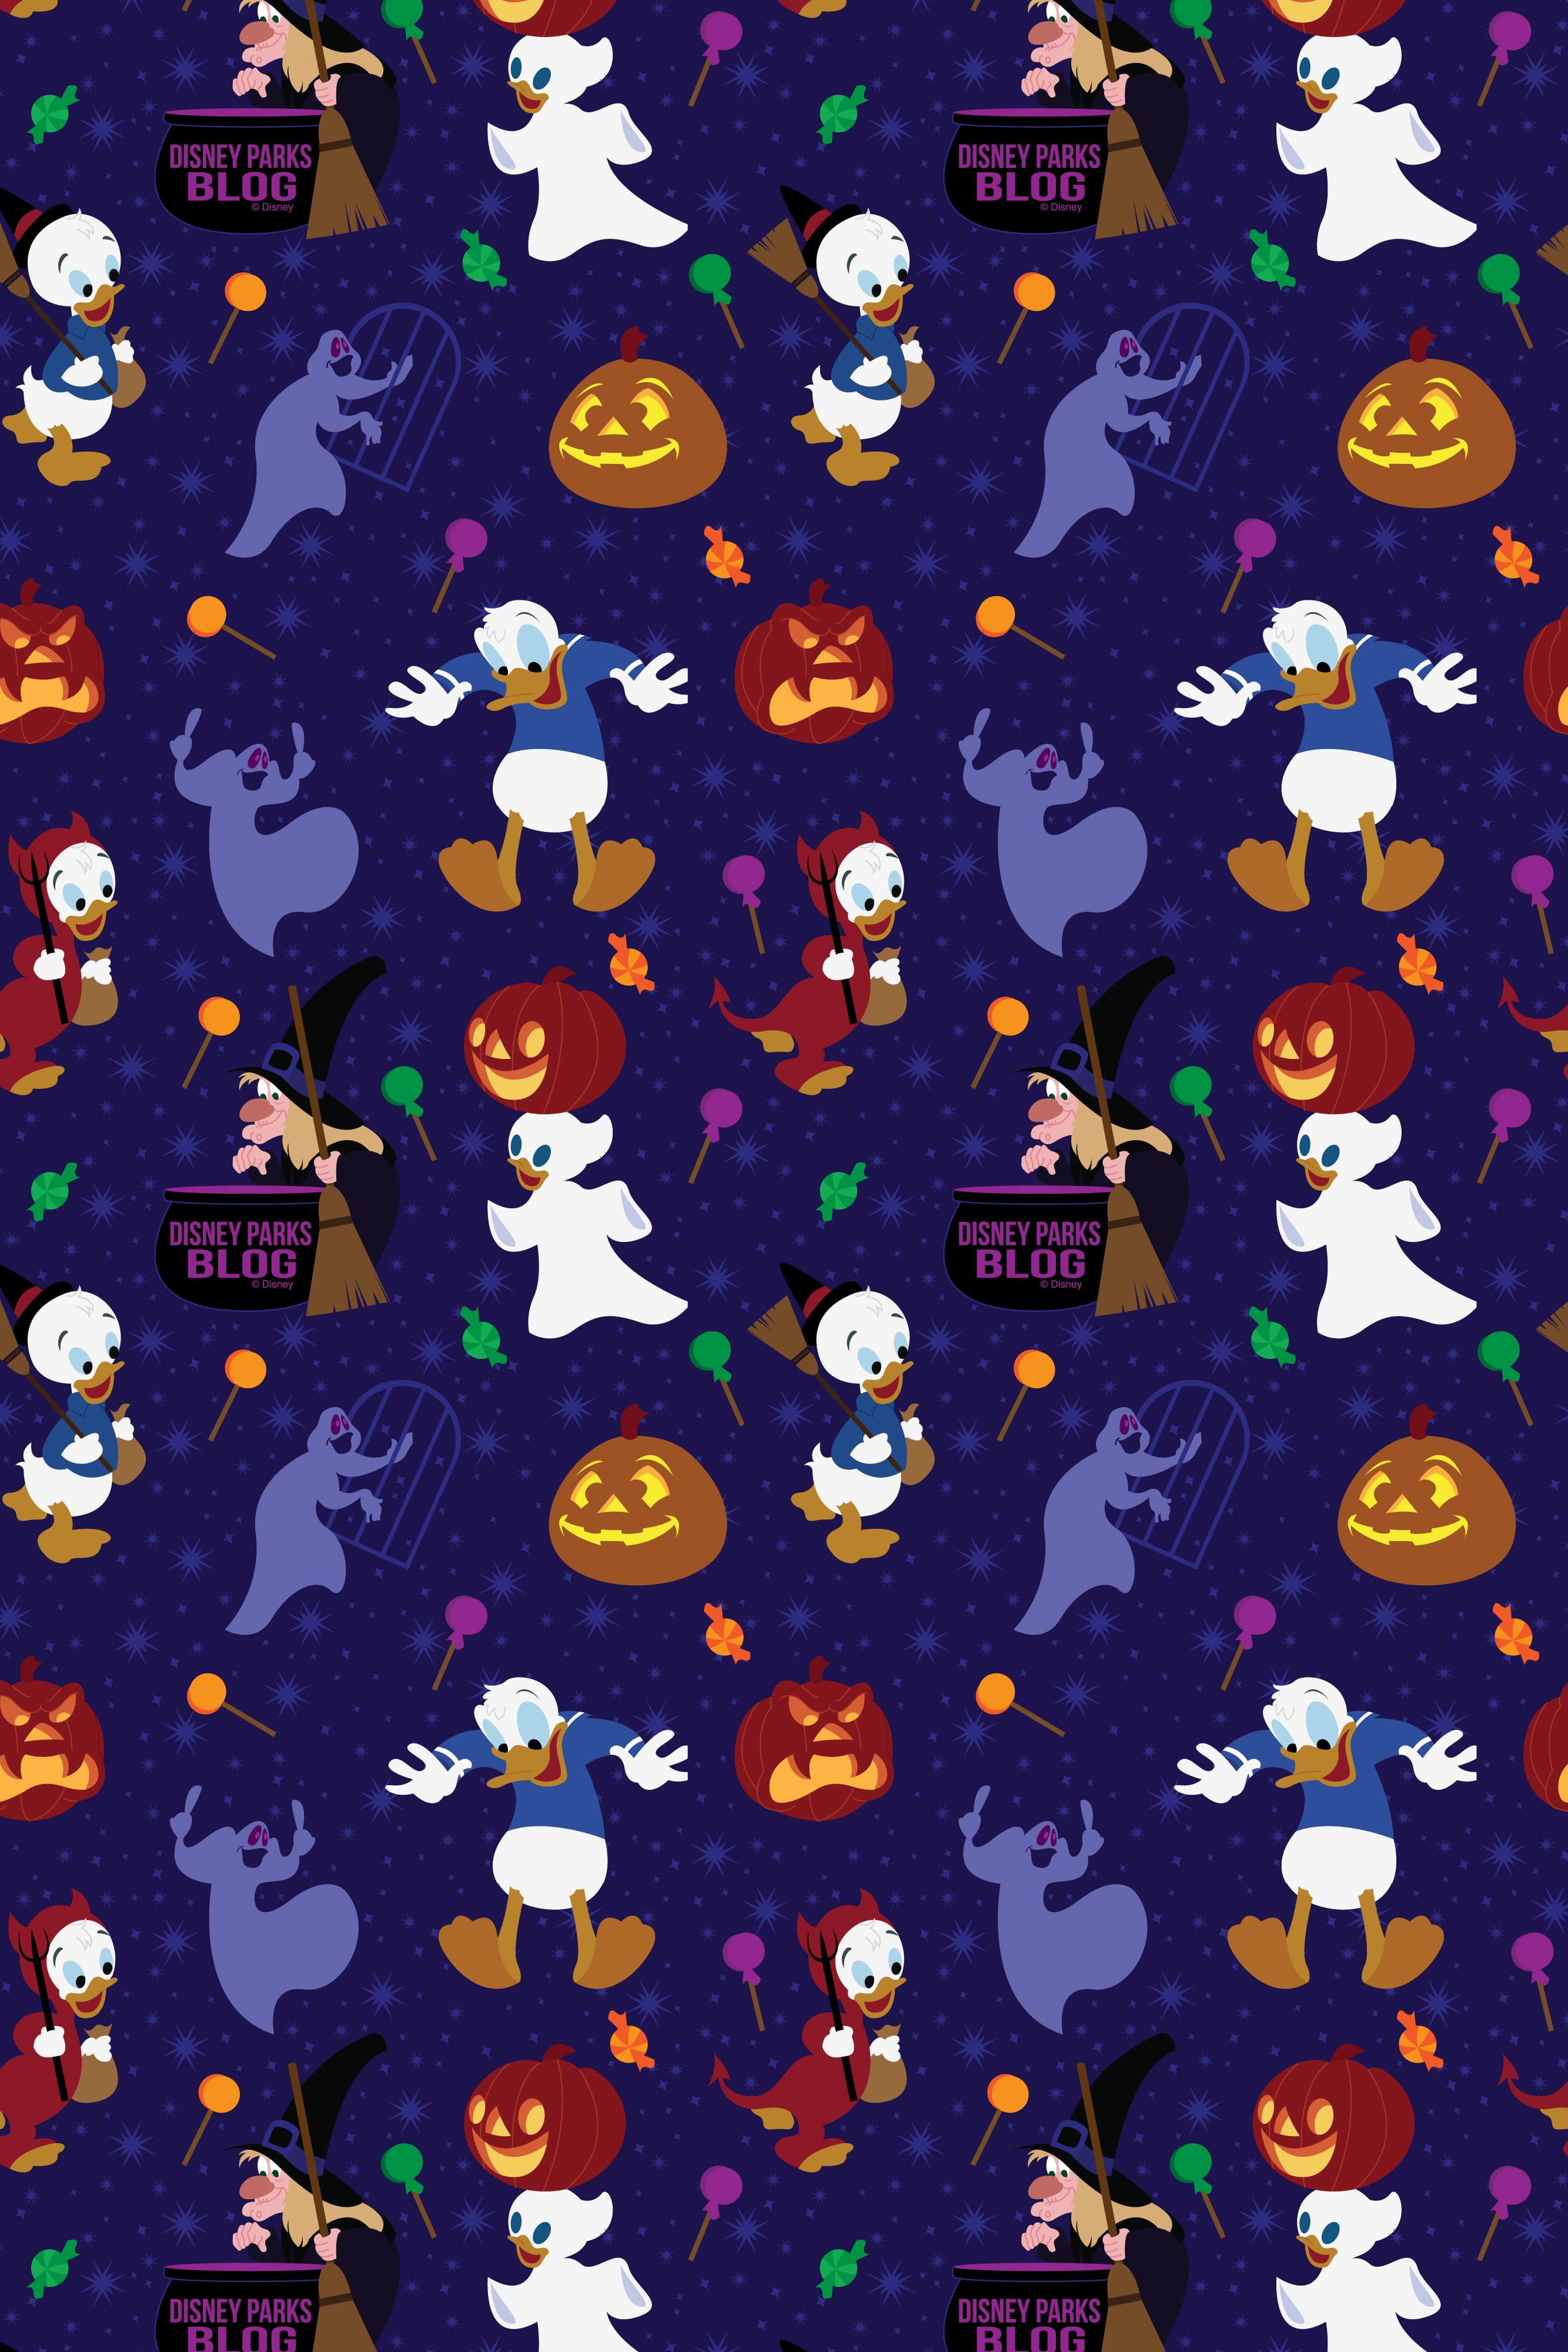 2019 Donald Duck Halloween Wallpaper Iphone Android Disney Parks Blog